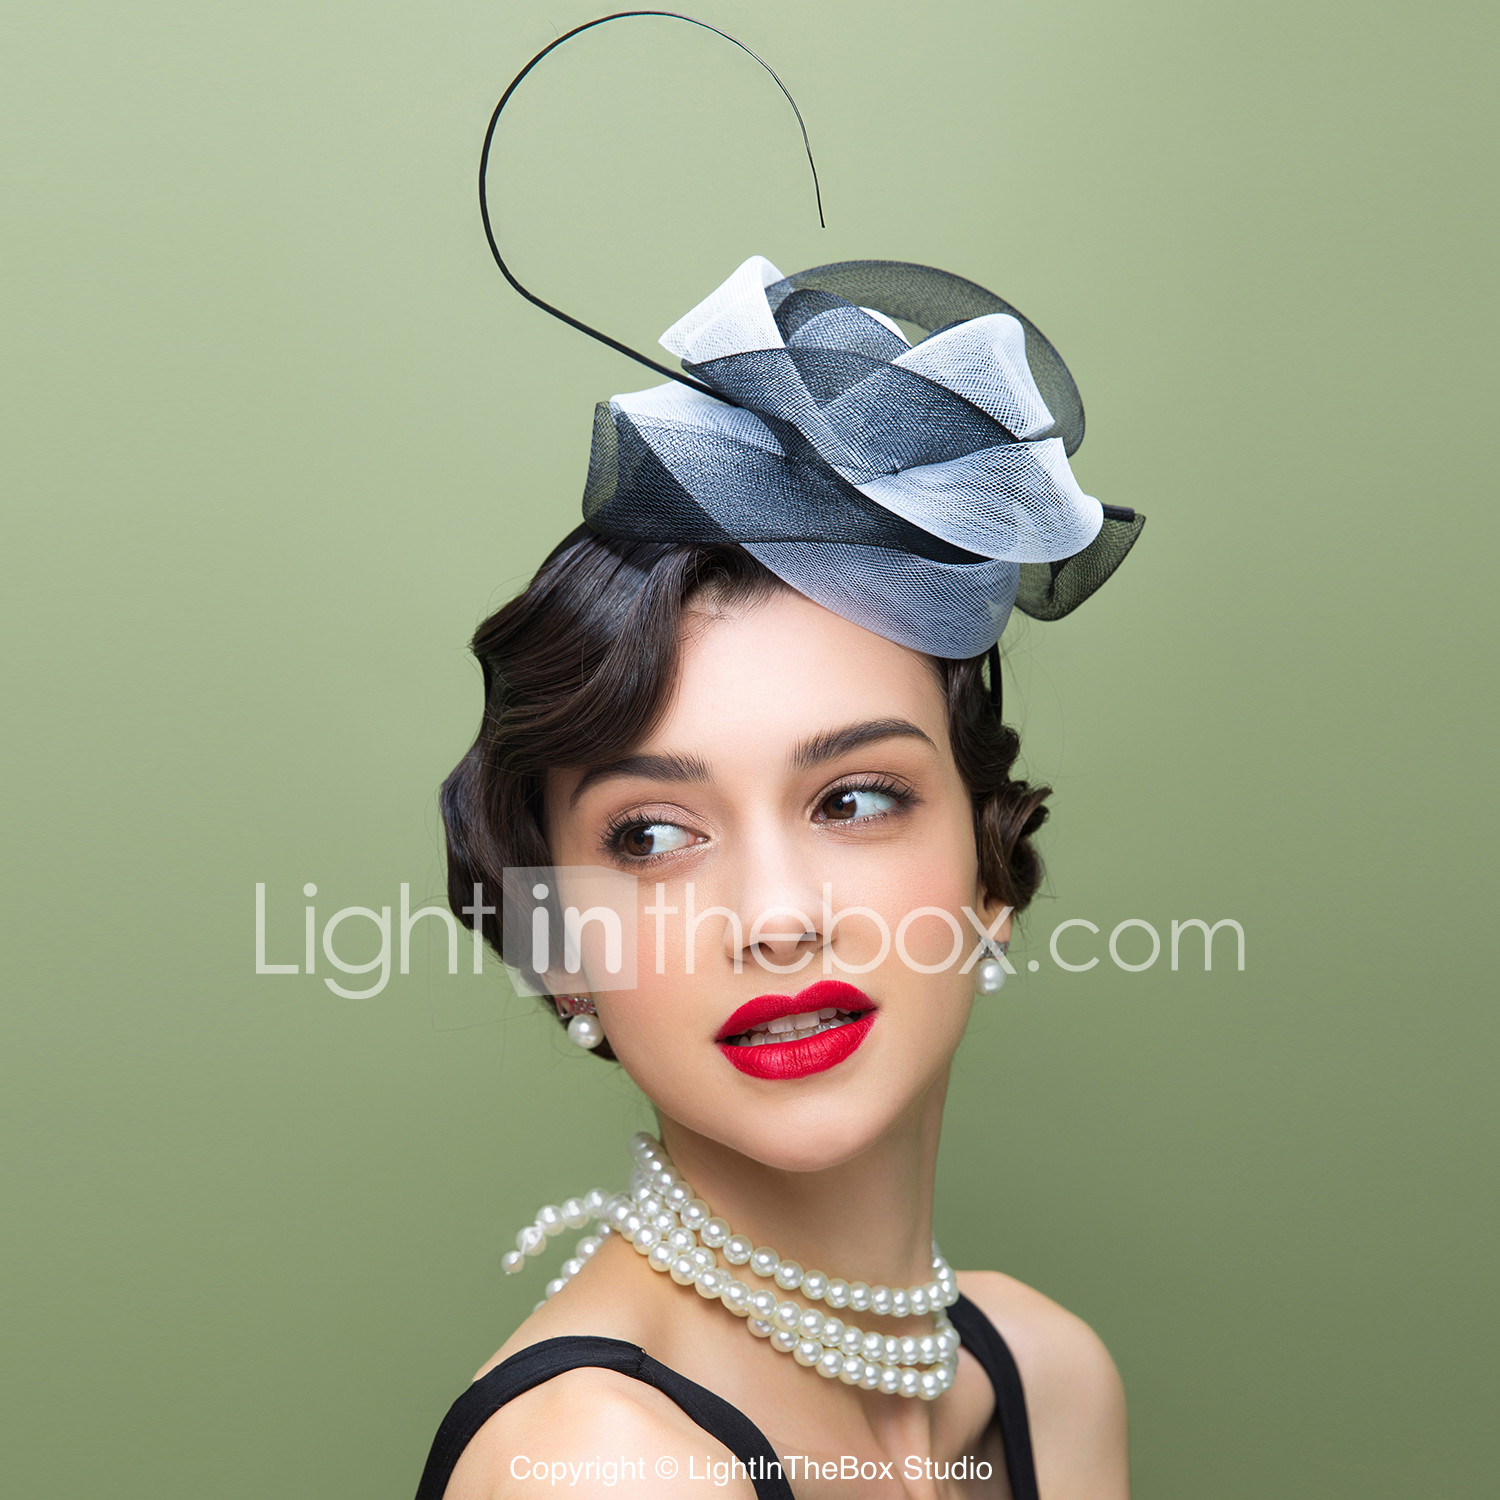 Women s Feather   Tulle Headpiece-Wedding   Special Occasion   Casual  Fascinators   Hats 1 Piece  05452469 f02cfadcd6d